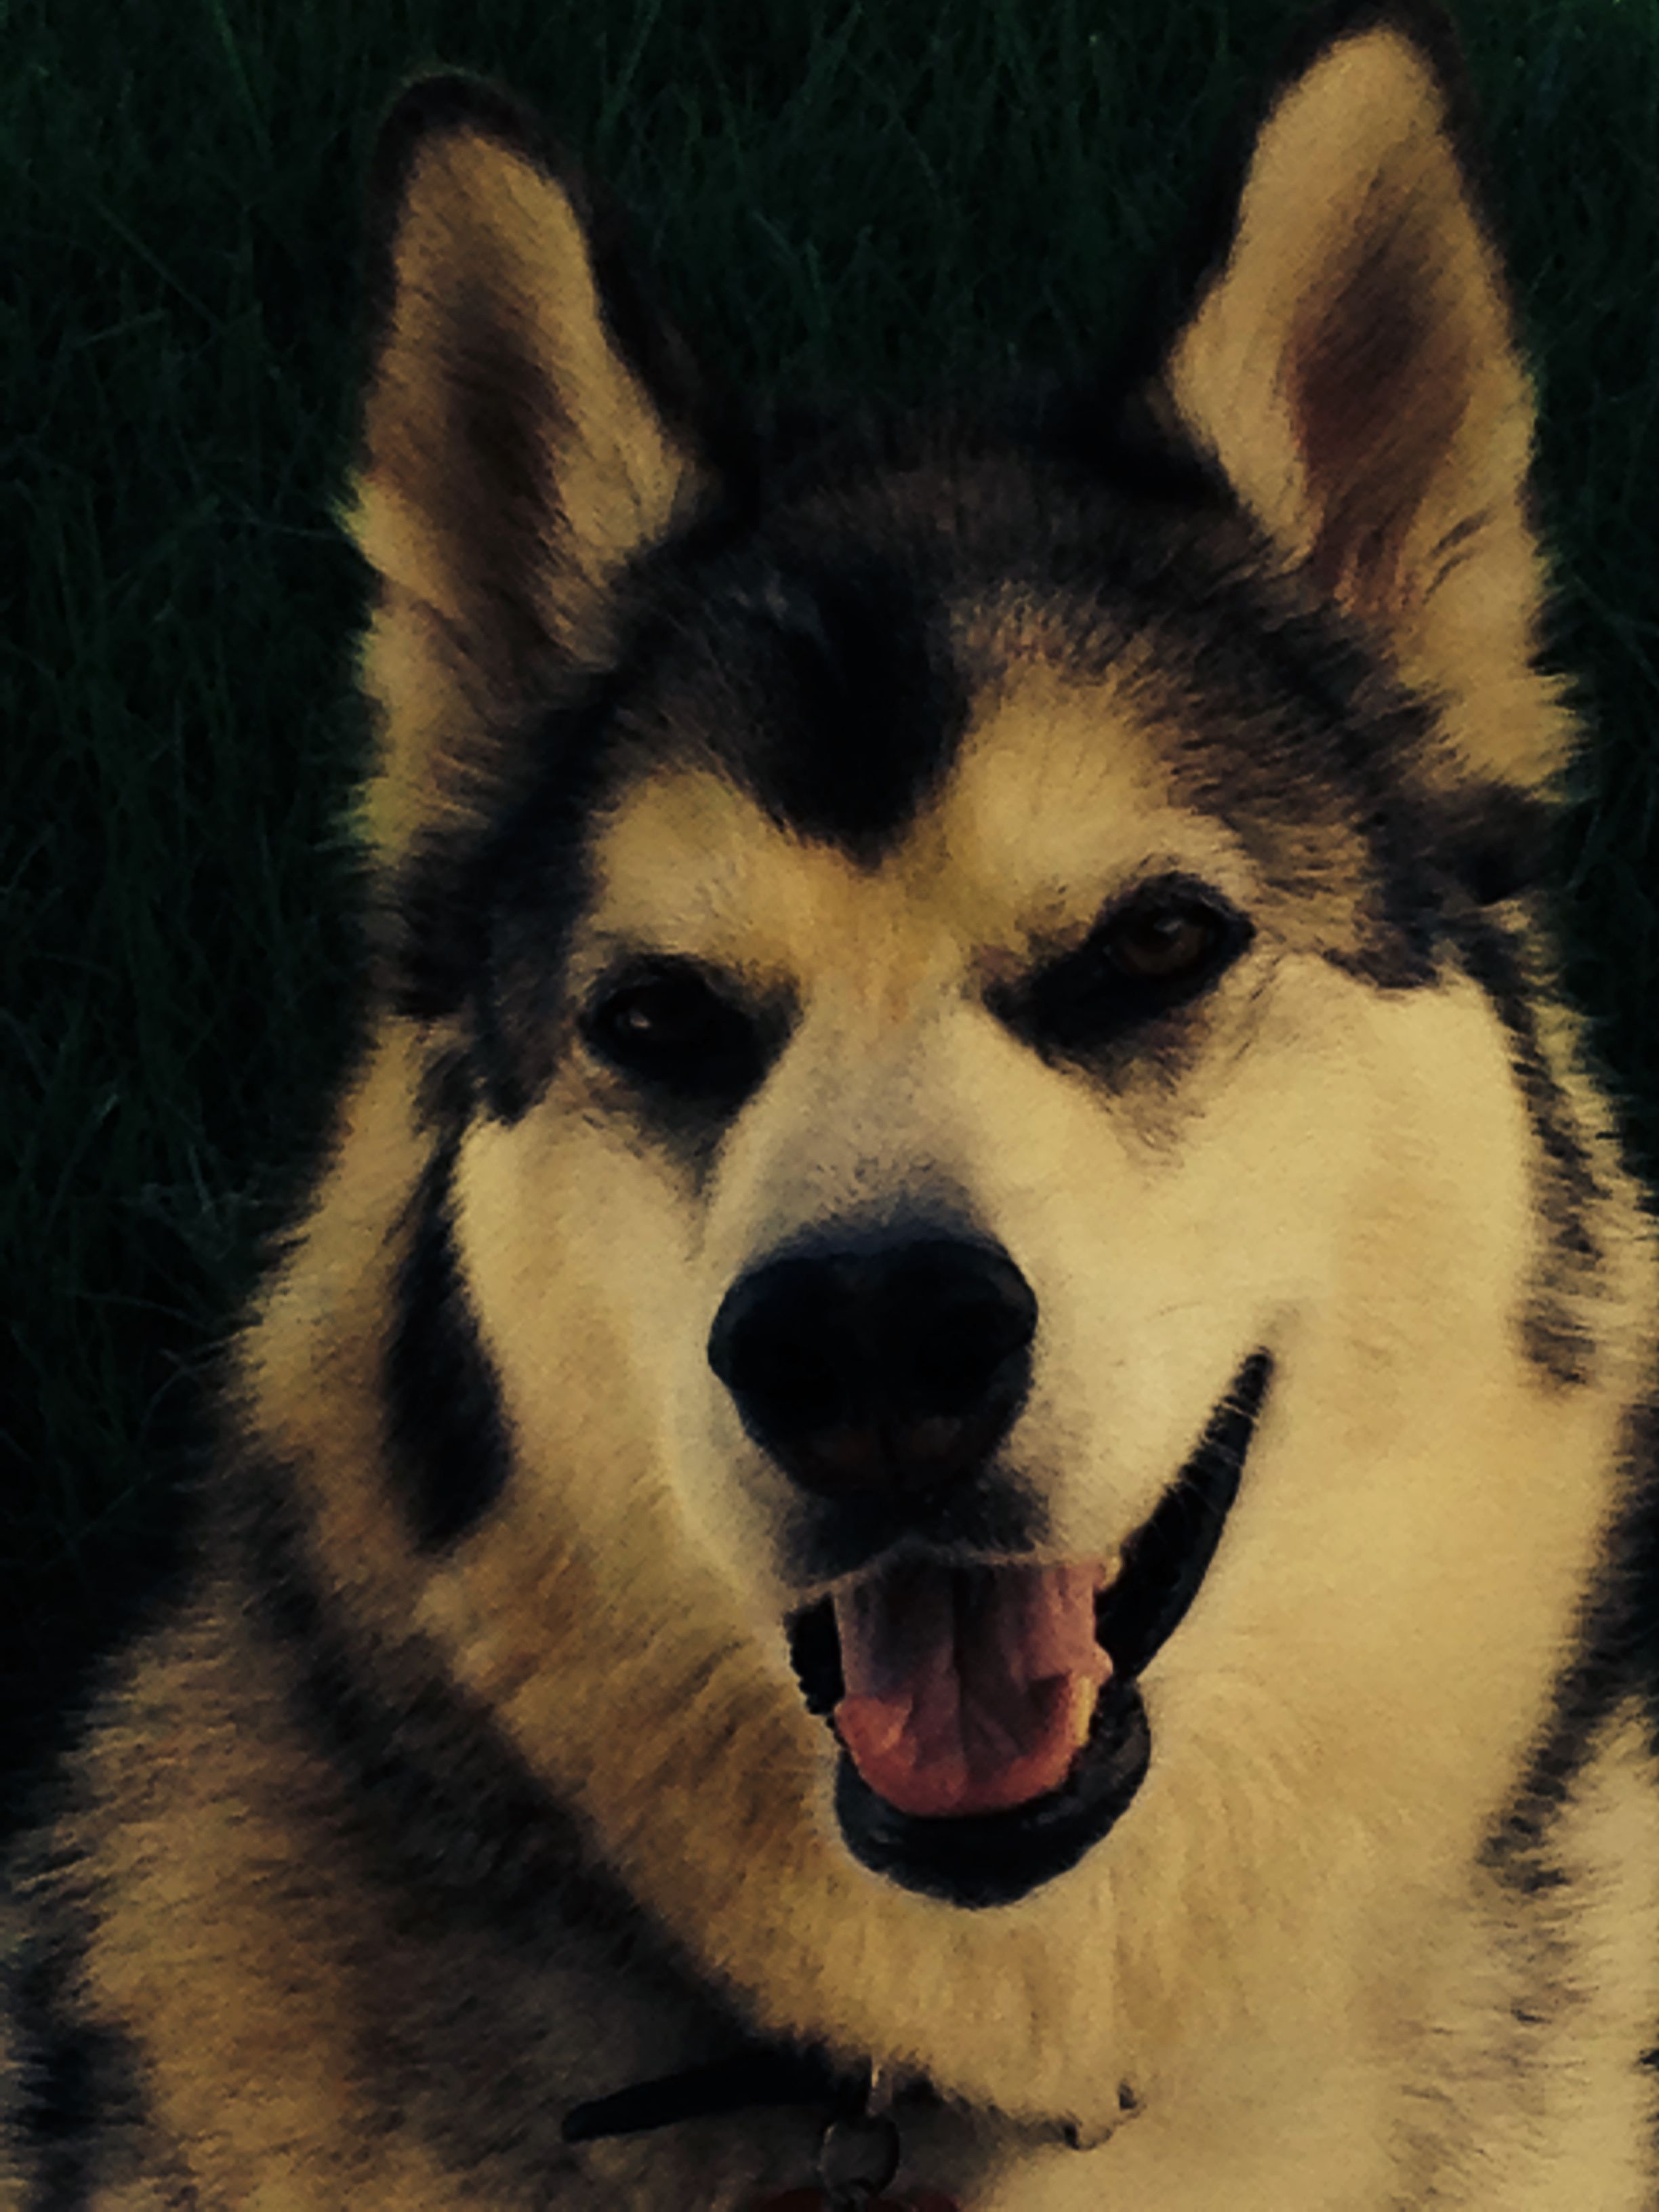 My rescued malamute